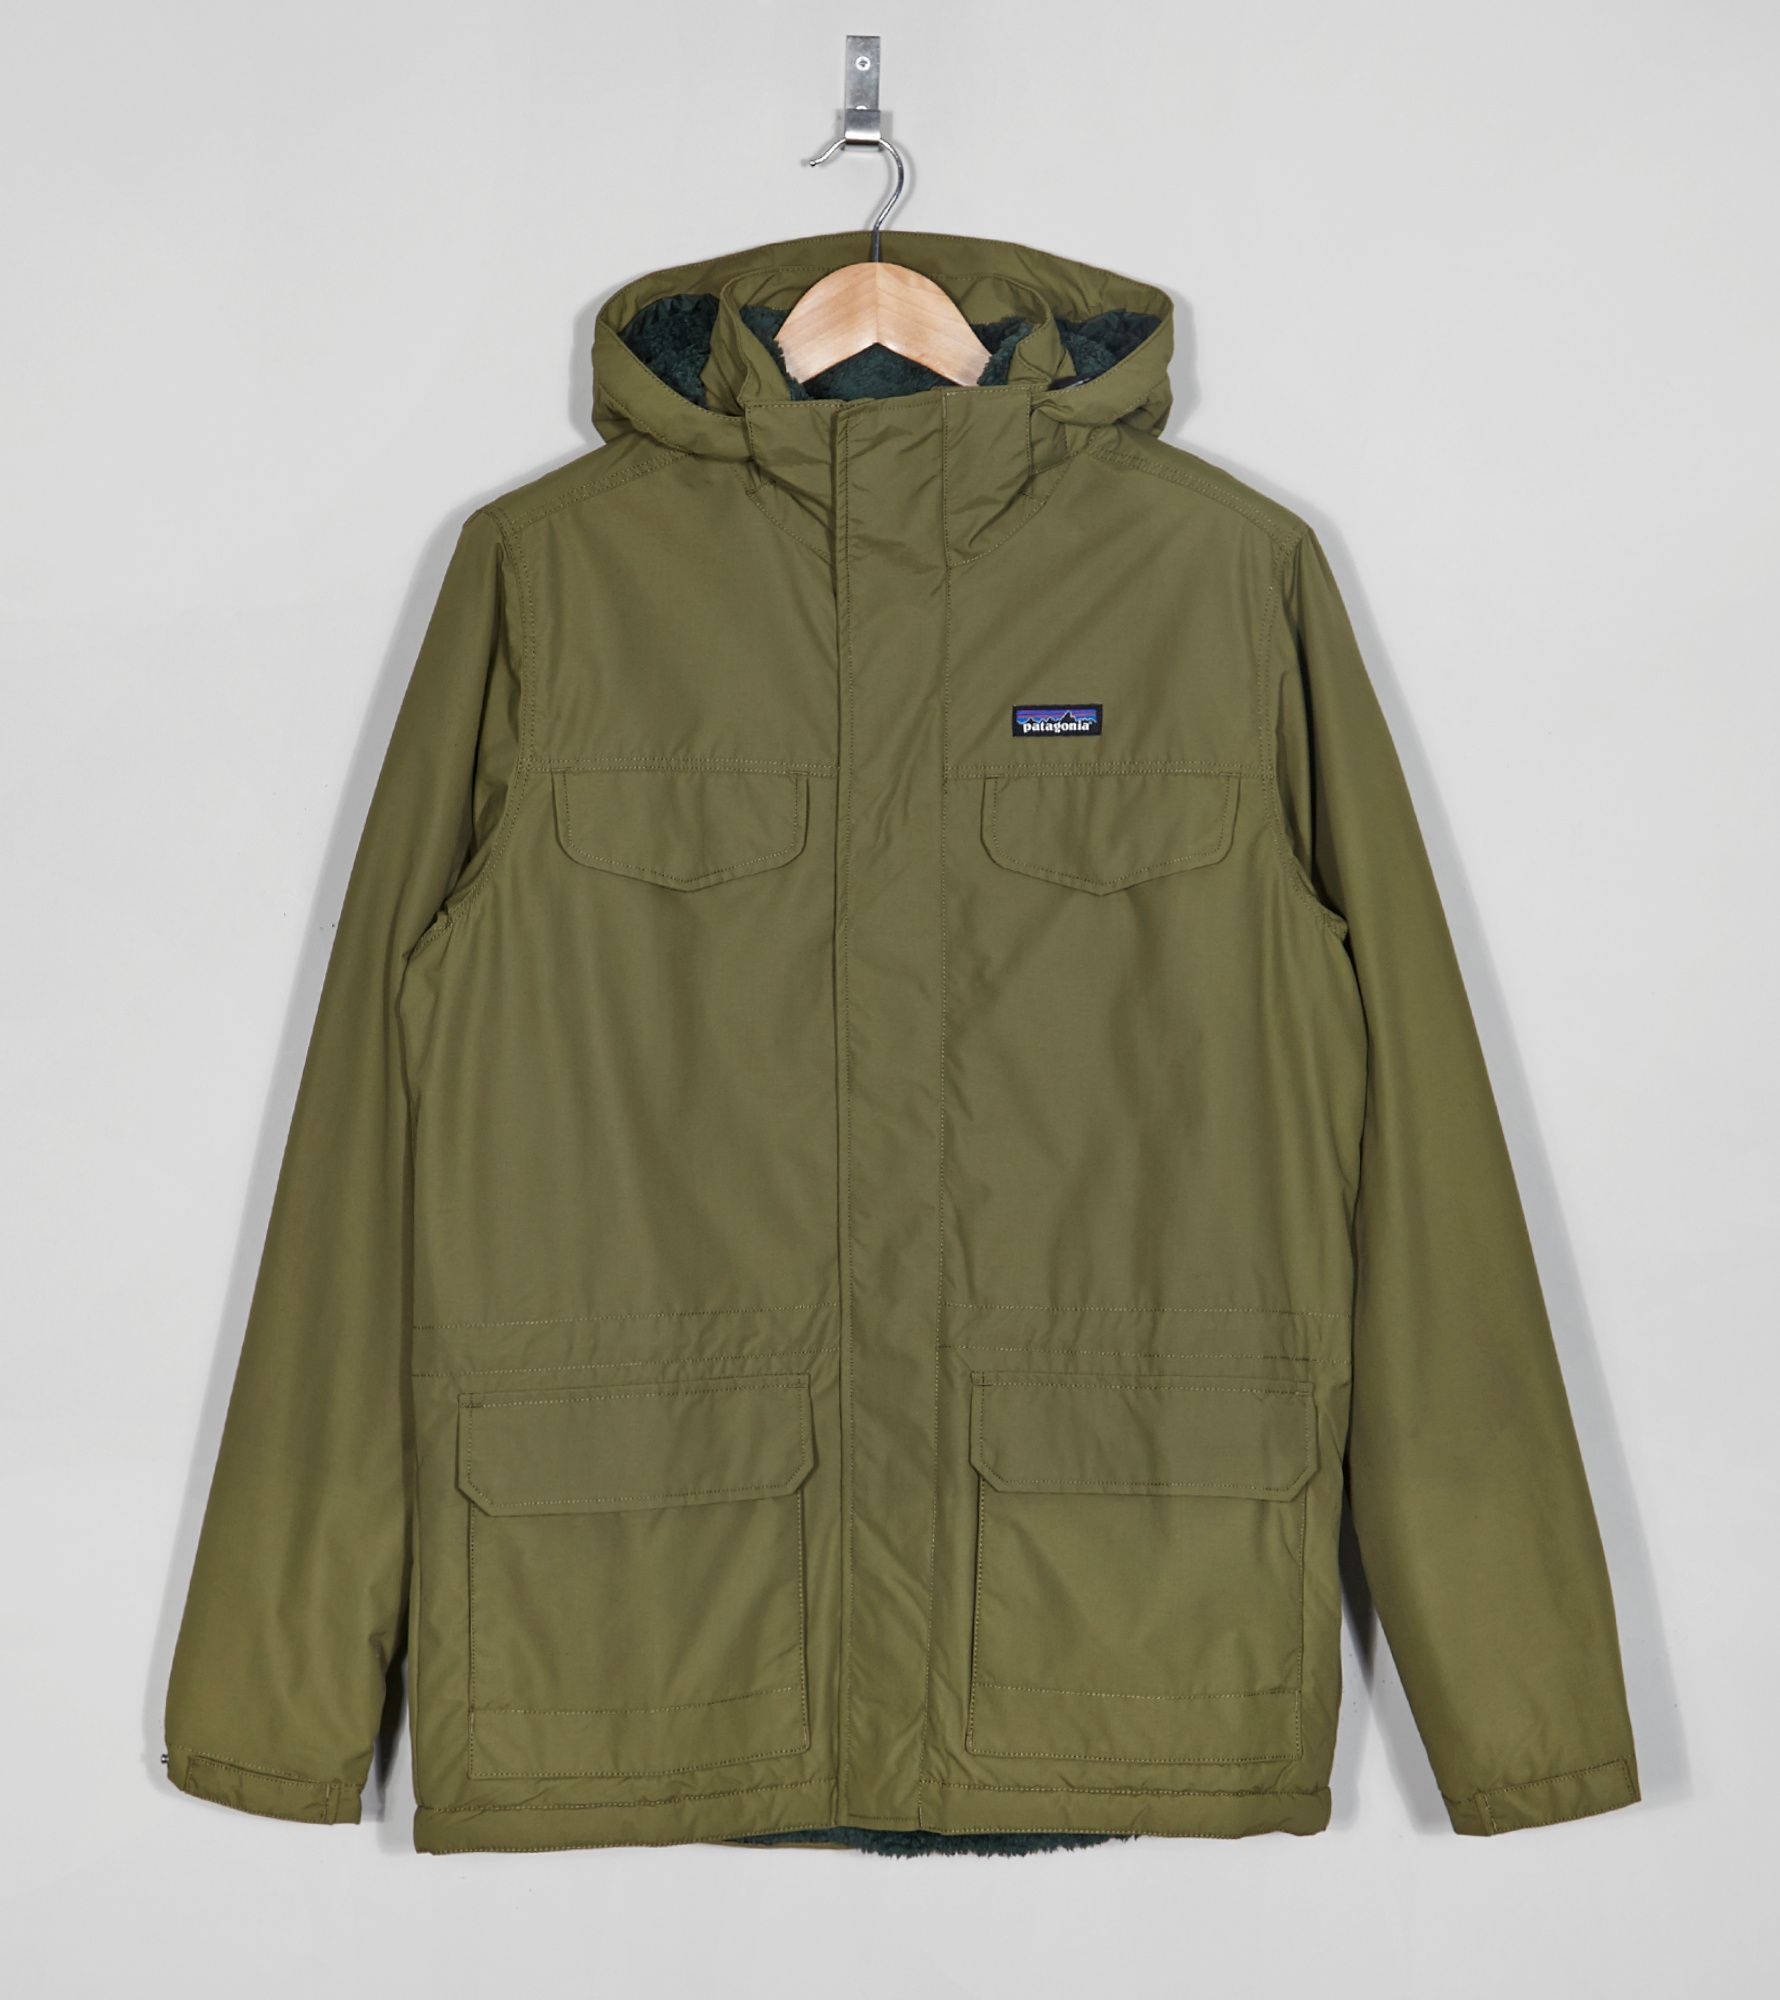 Patagonia Isthmus Parka Jacket - find out more on our site. Find the freshest in trainers and clothing online now.